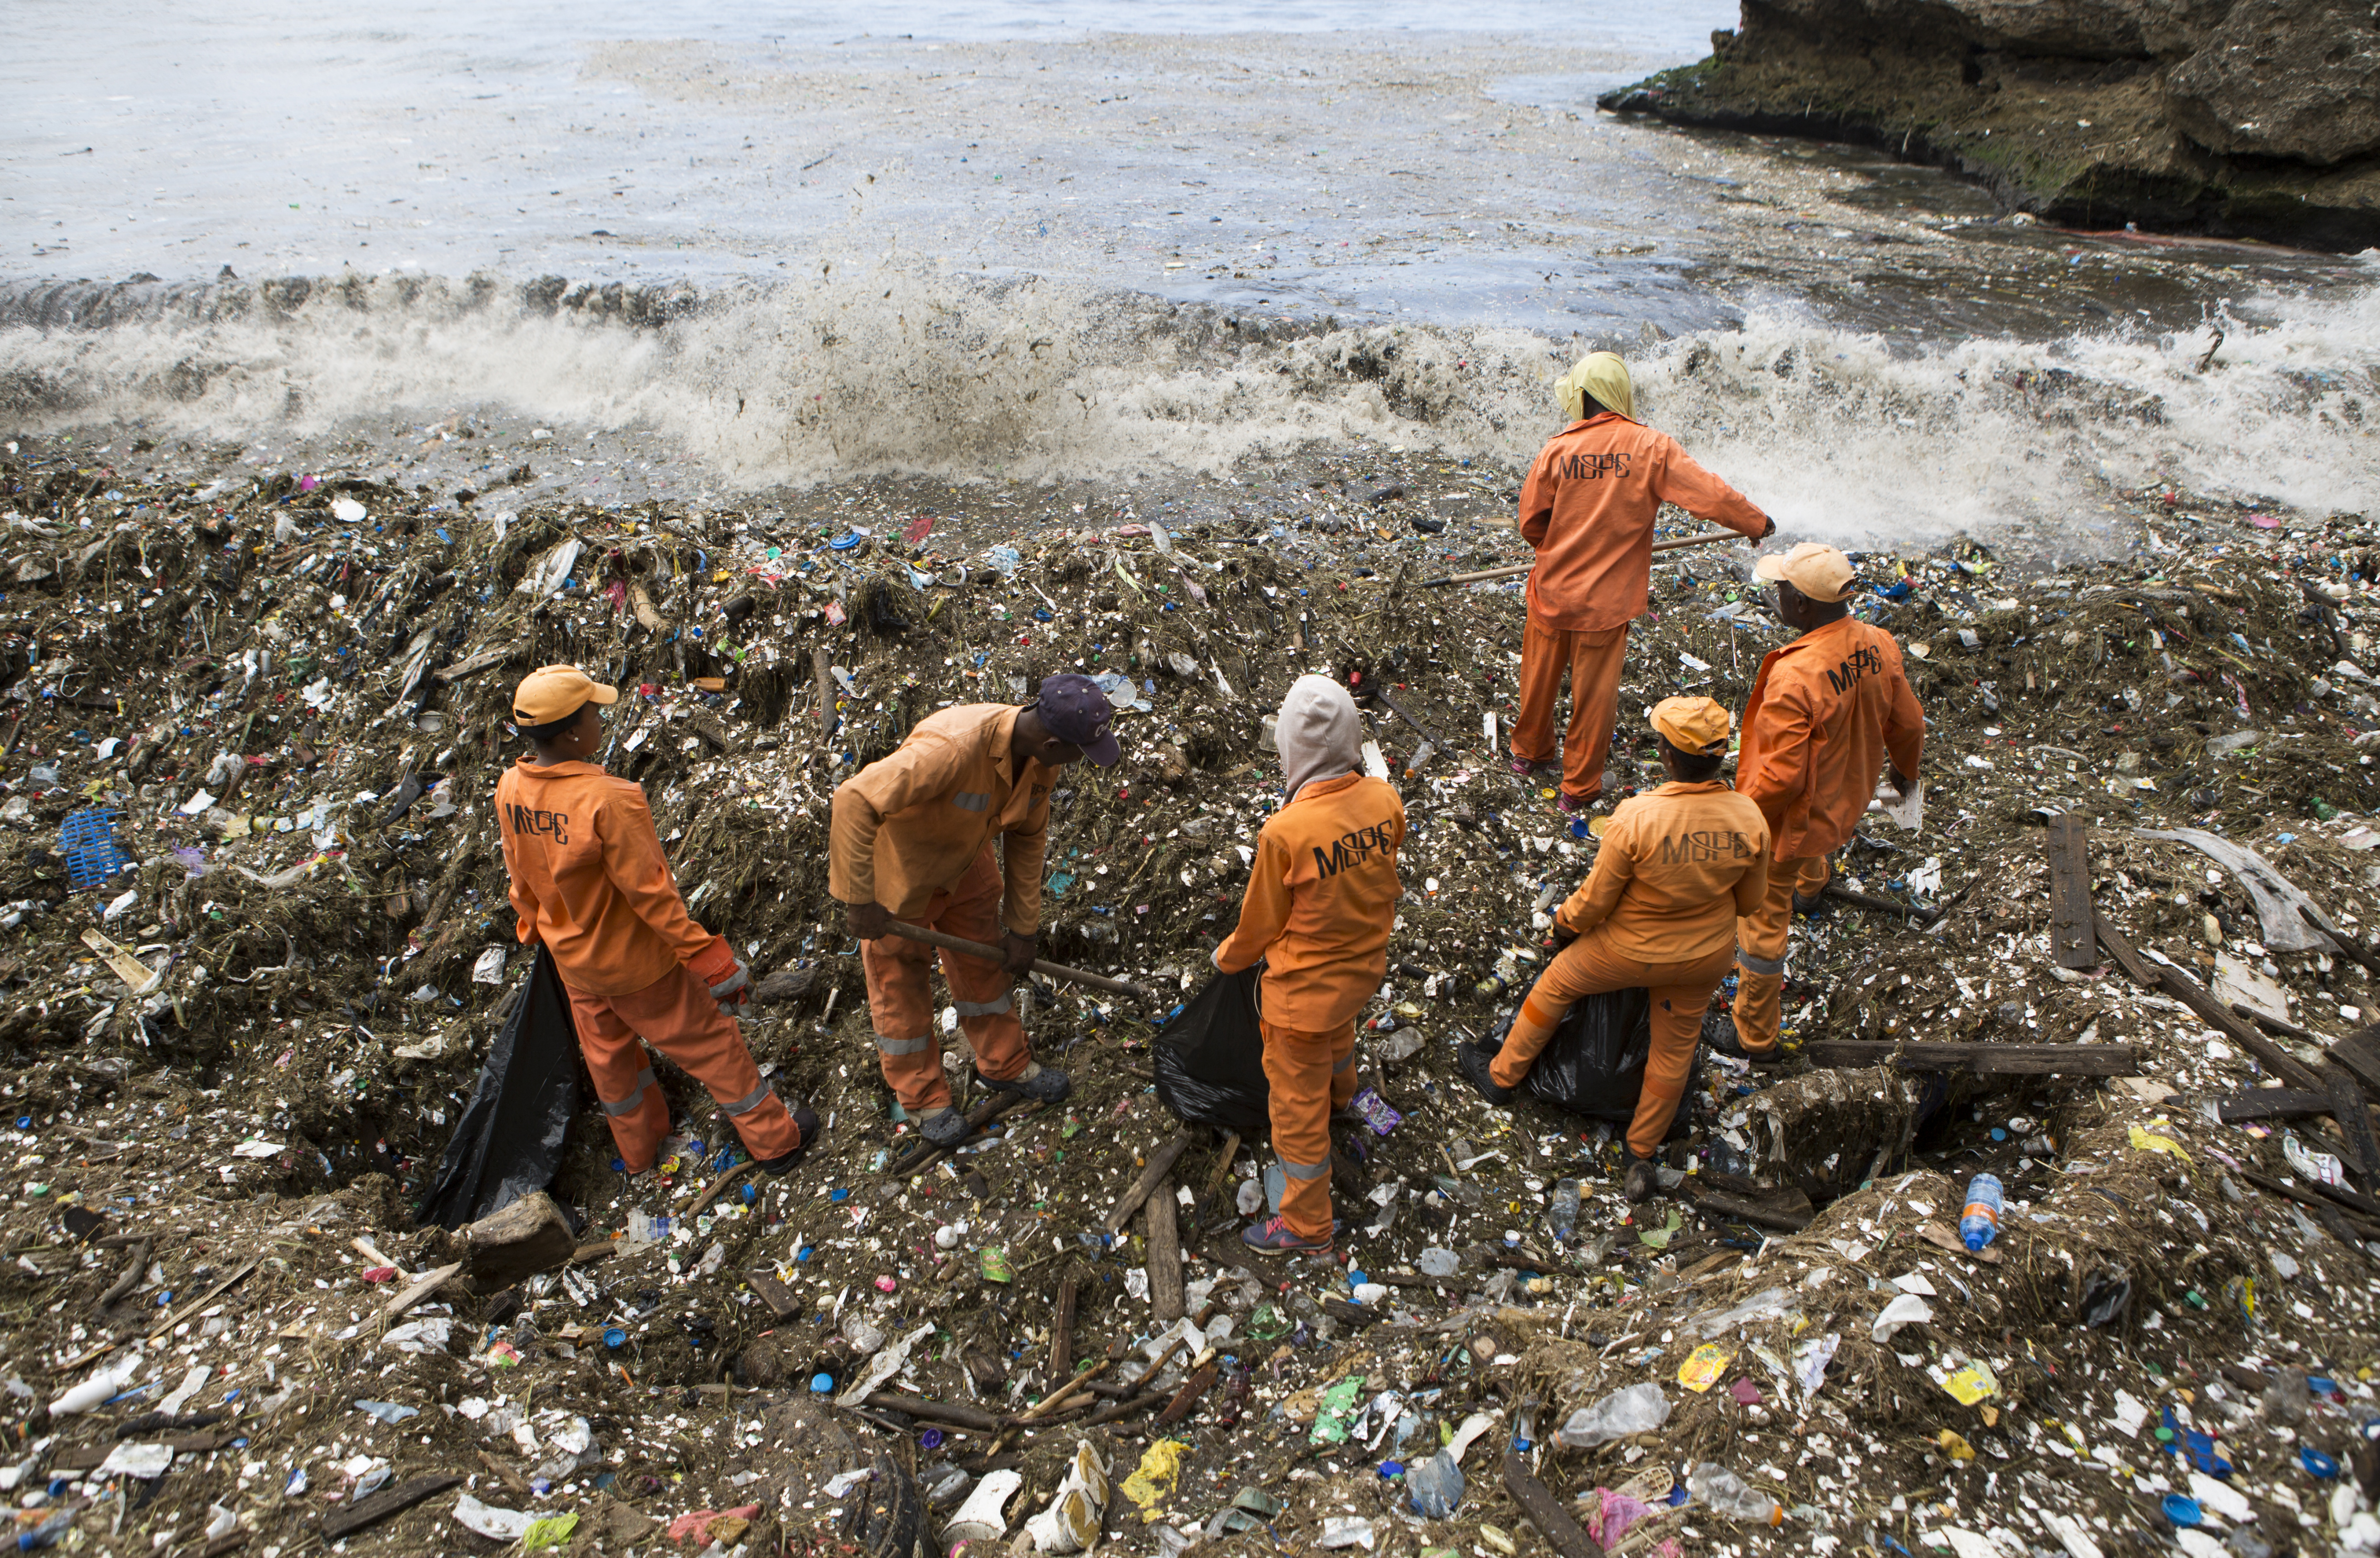 Workers collect rubbish on the coast of Santo Domingo, Dominican Republic, July 16, 2018.